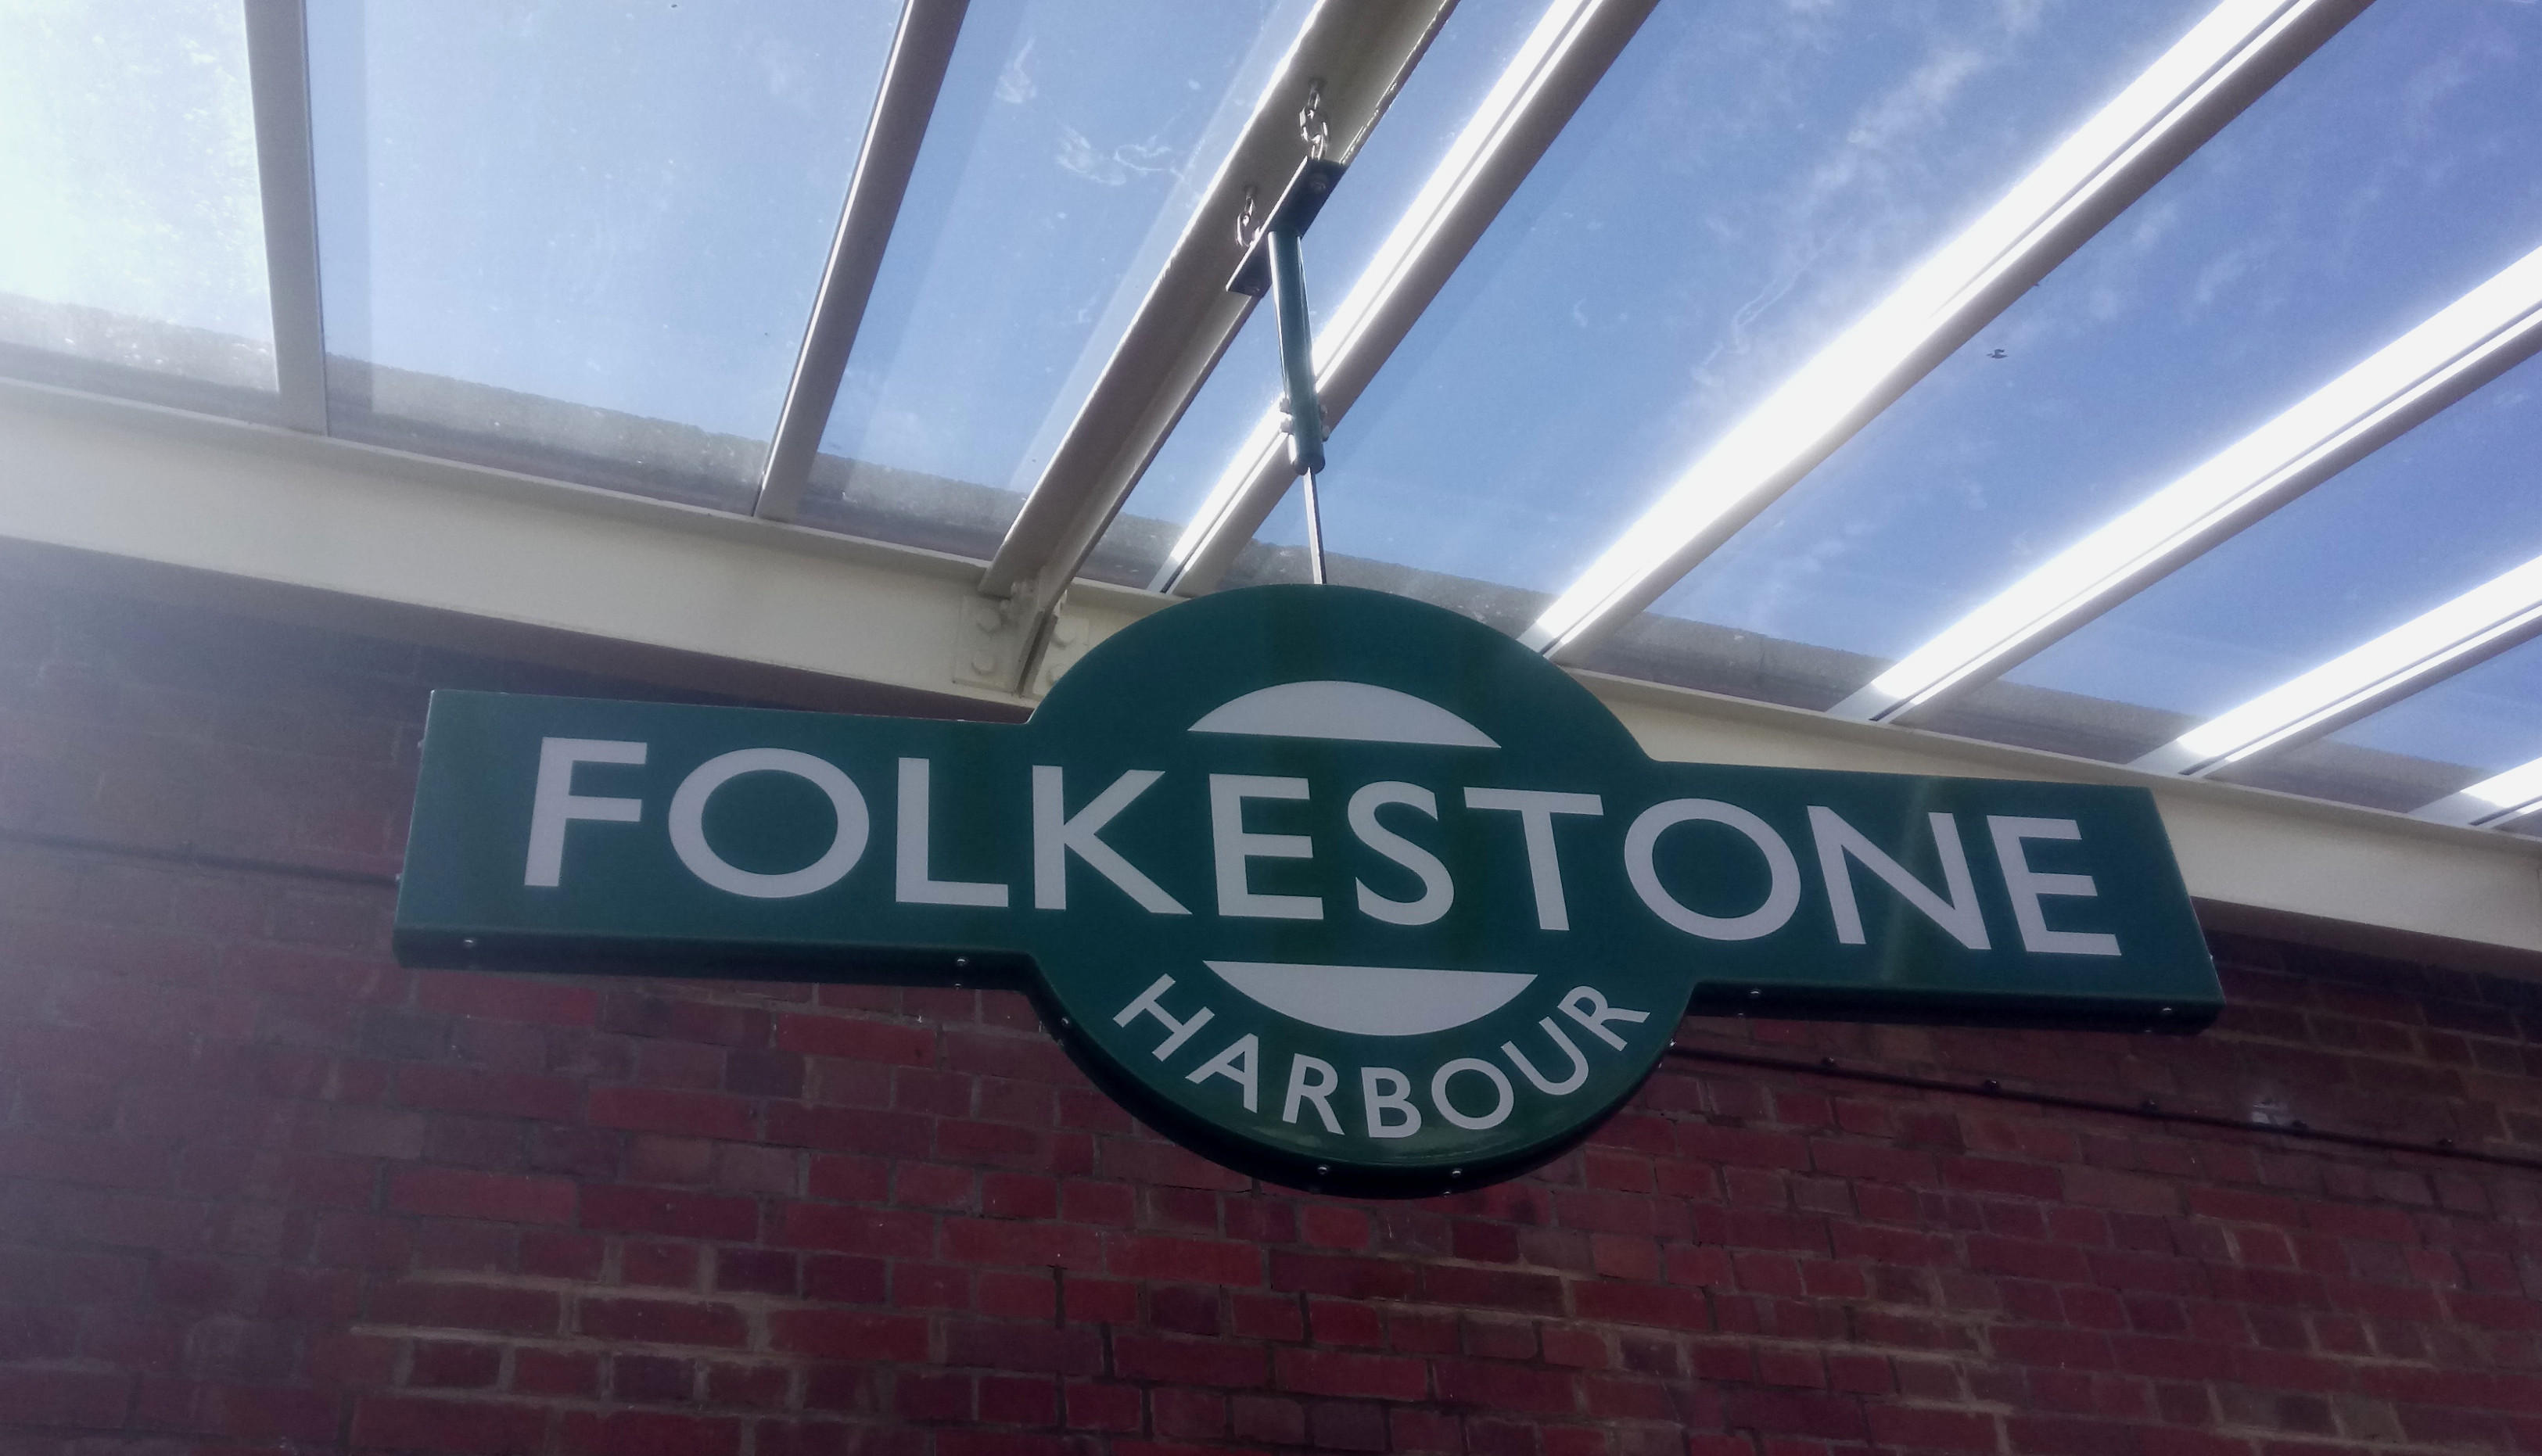 Folkestone Harbour Station Sign